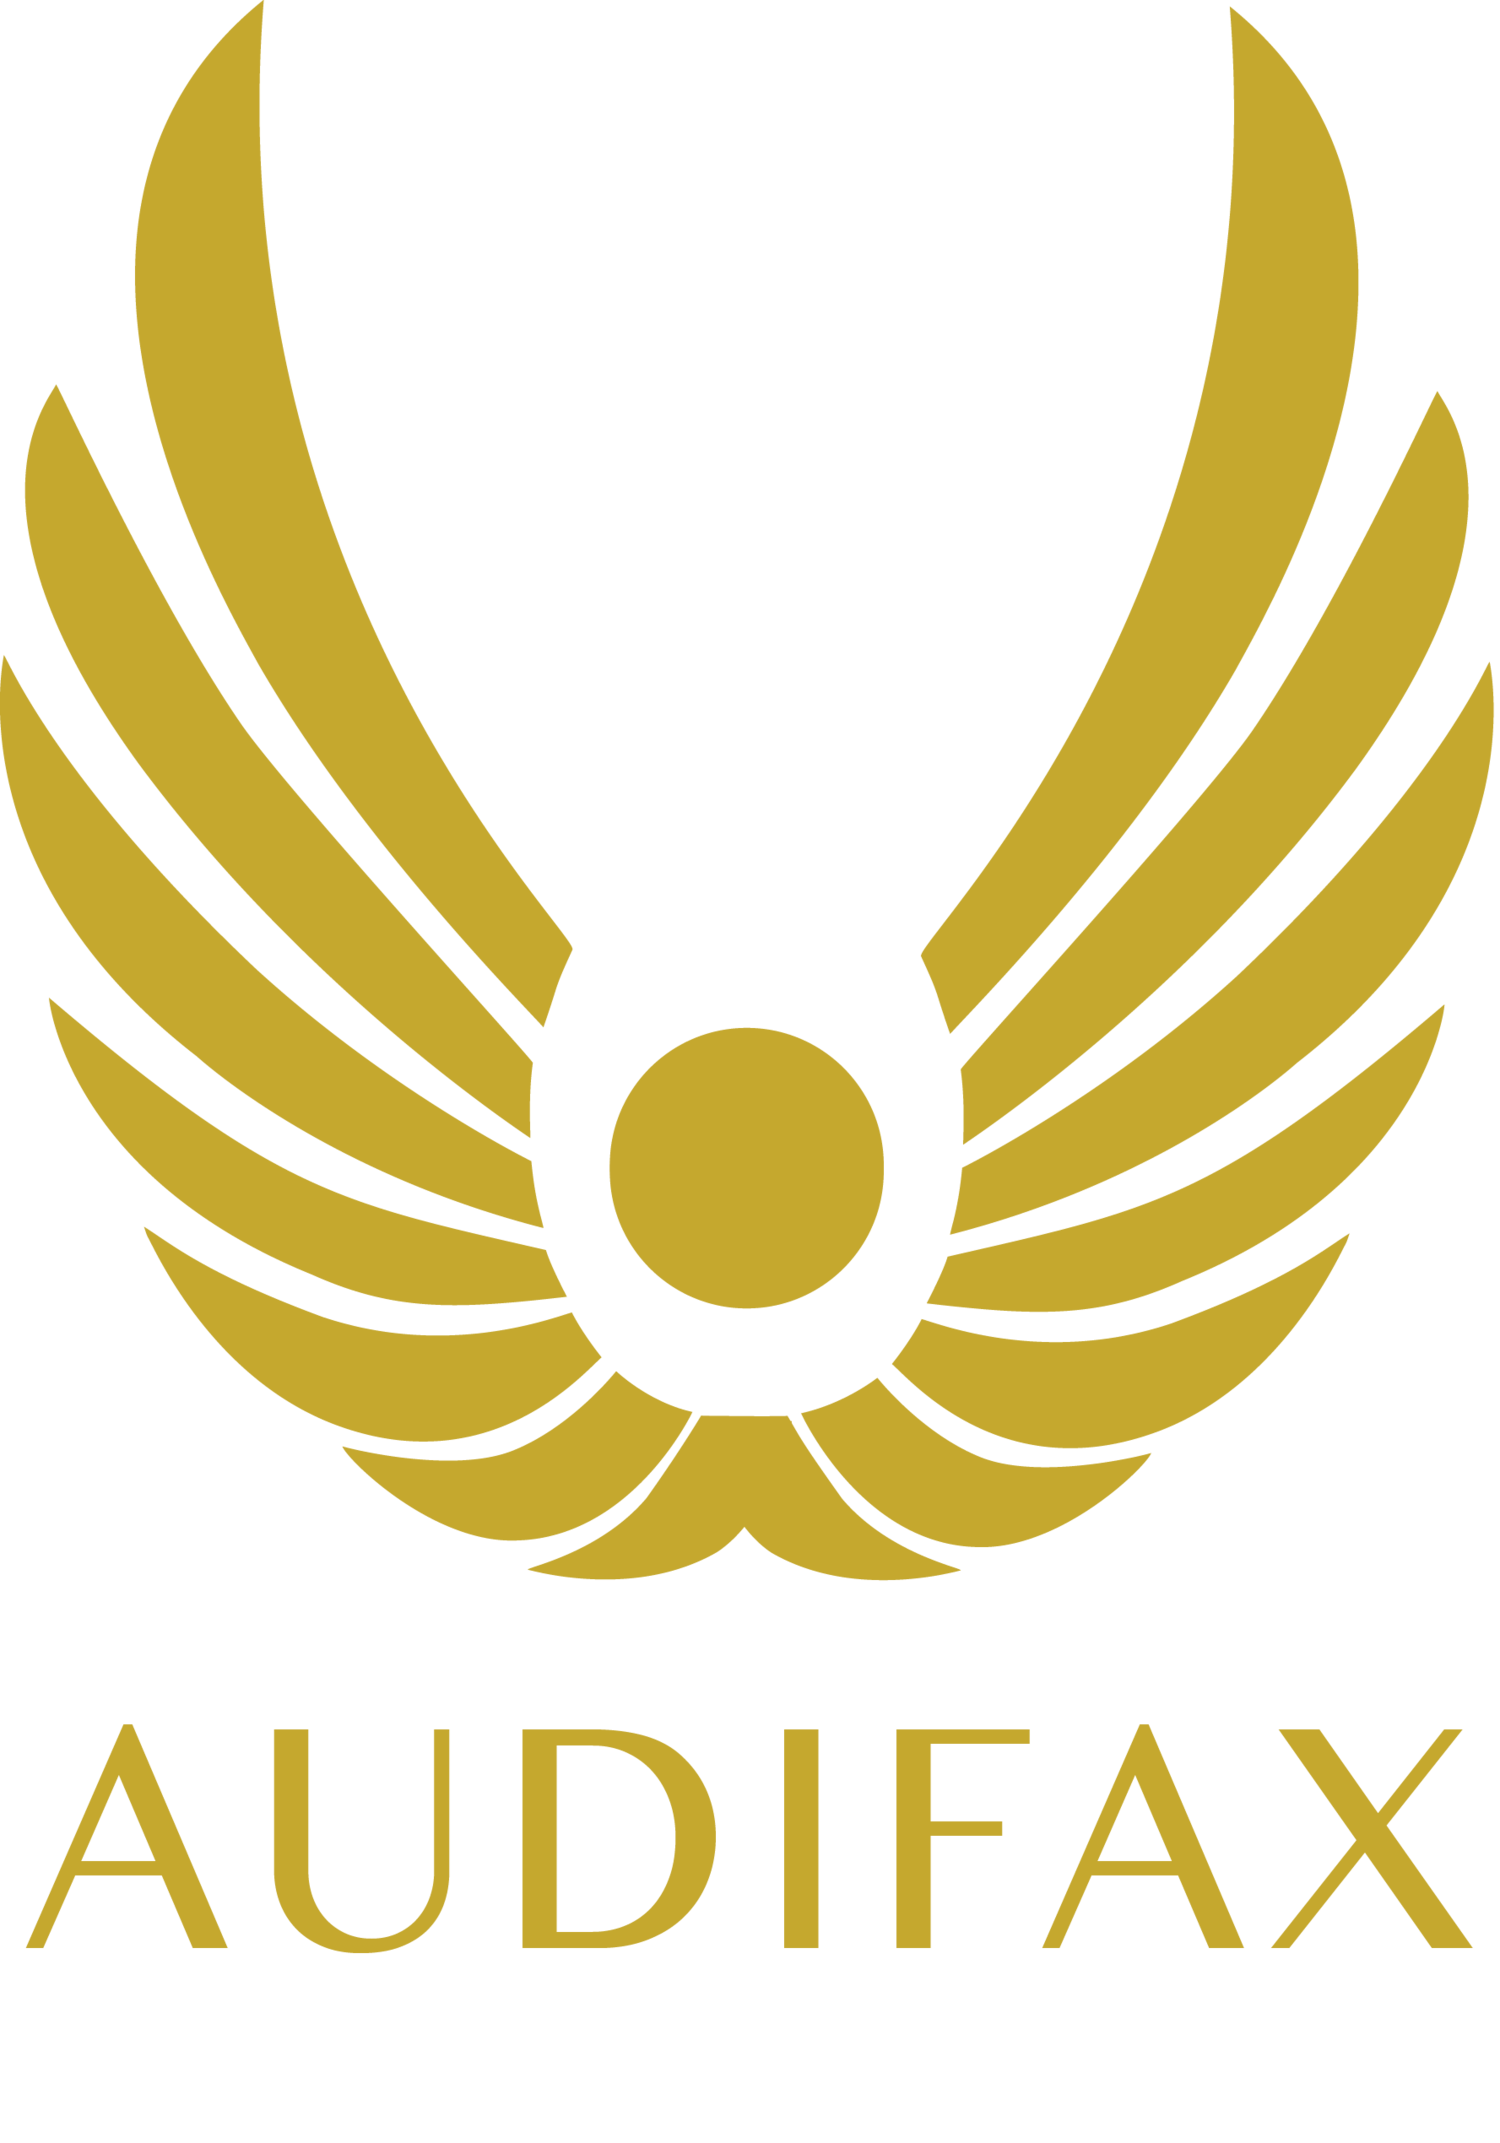 Audifax Design